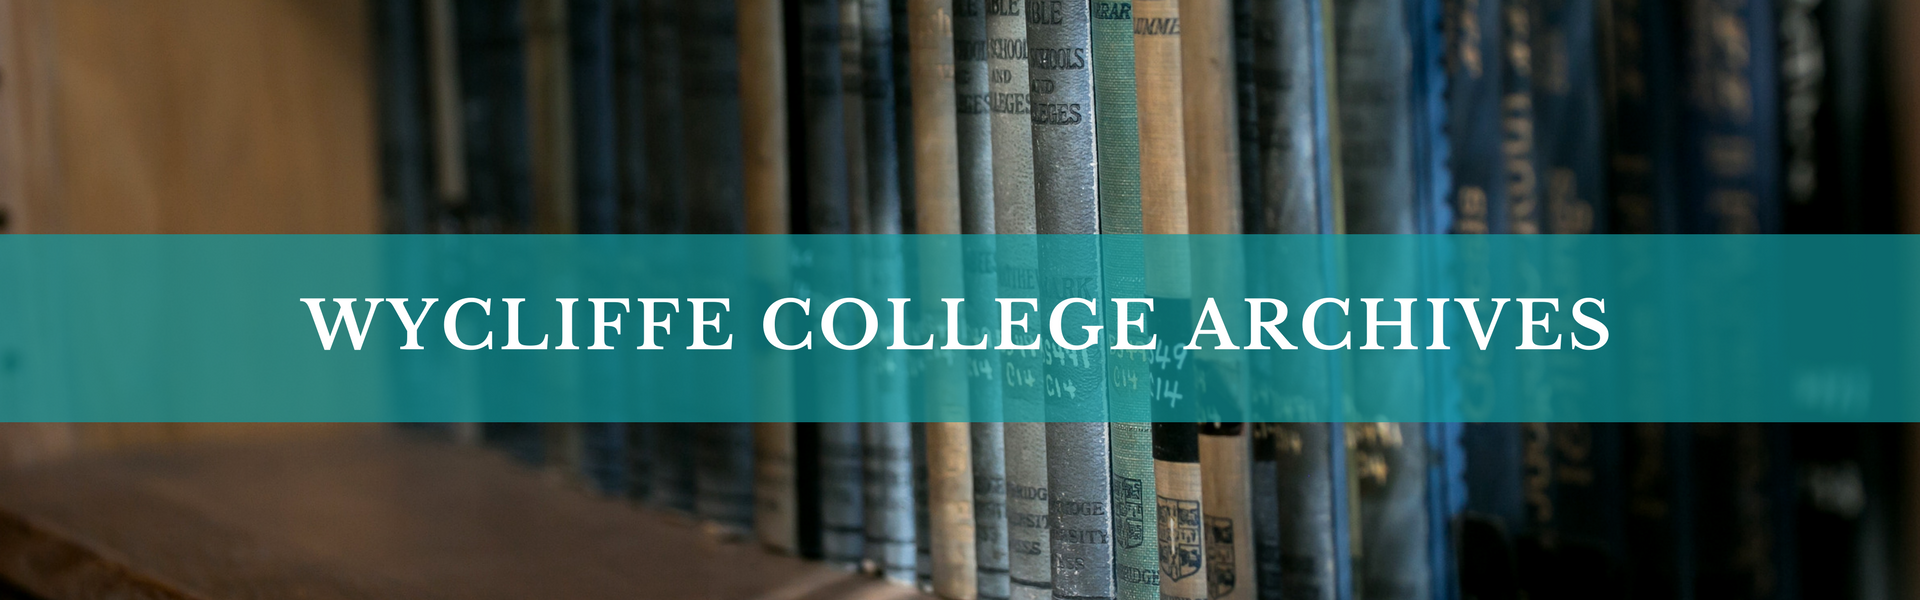 Wycliffe College Archives Banner